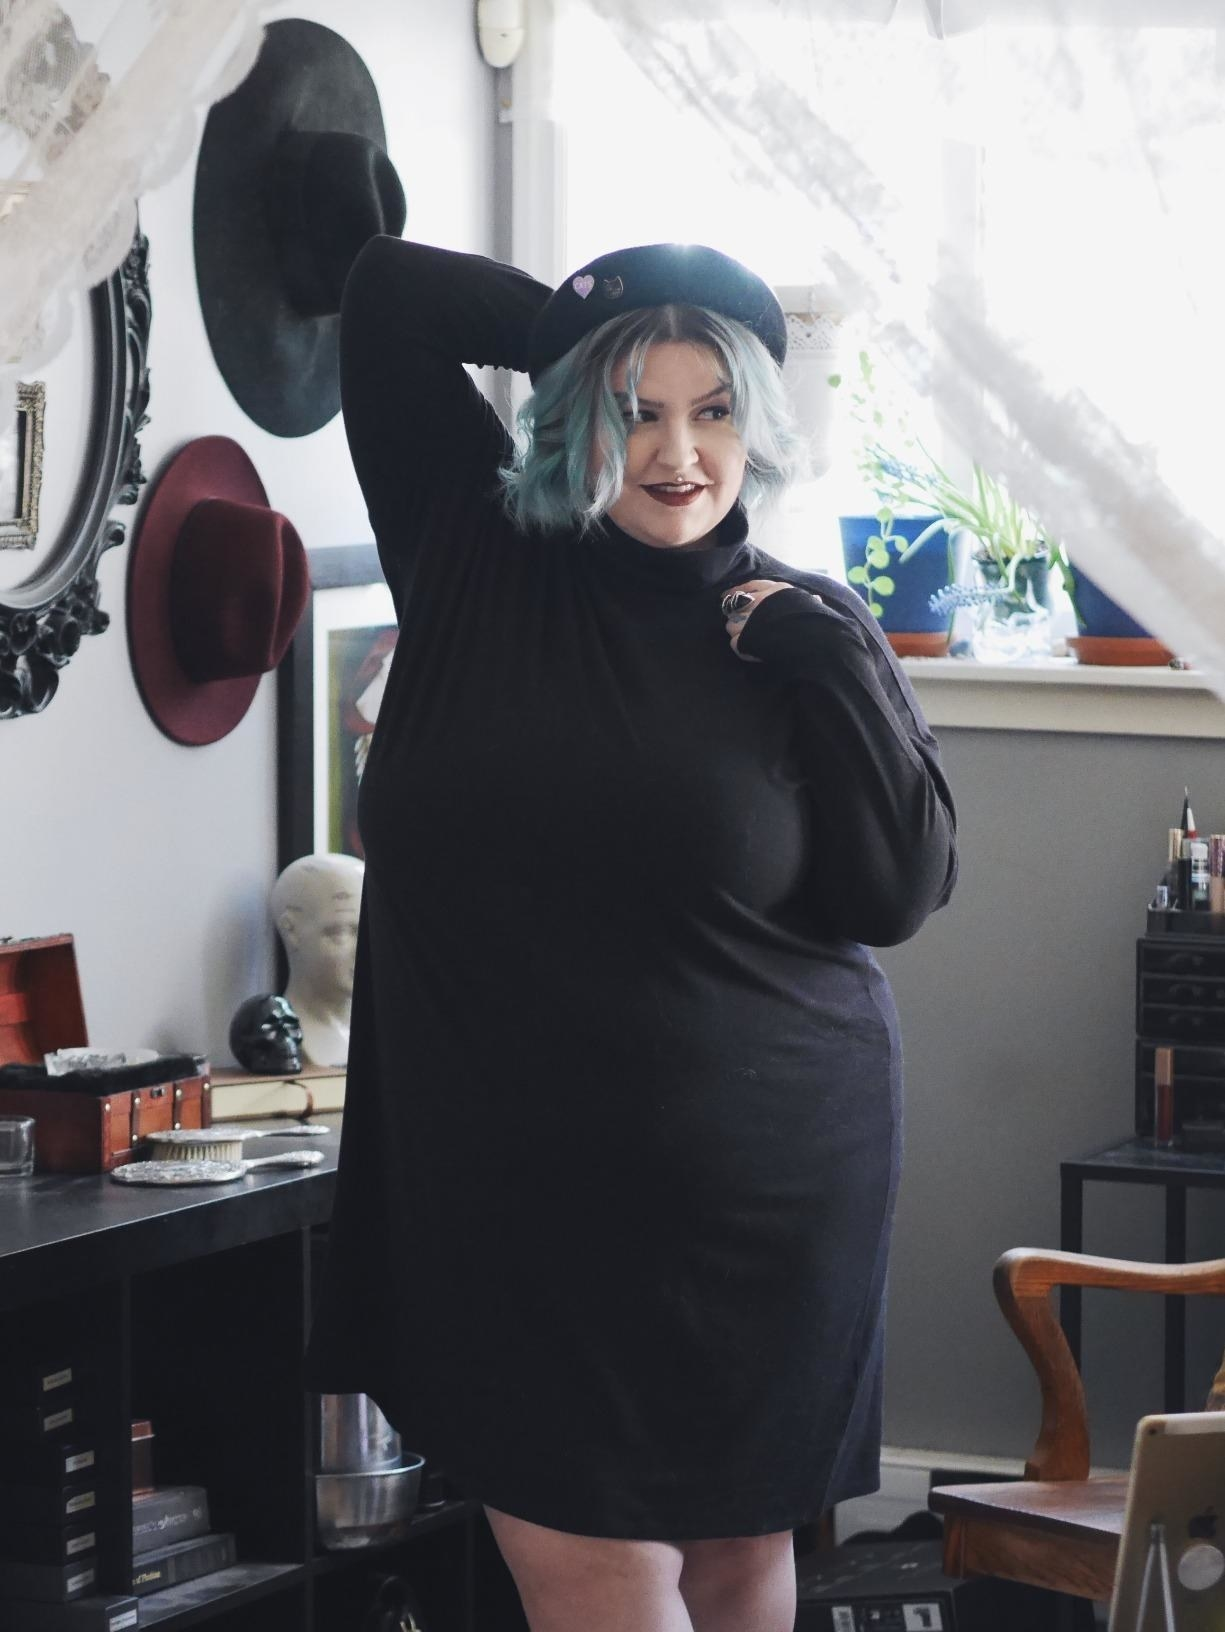 reviewer modeling the dress